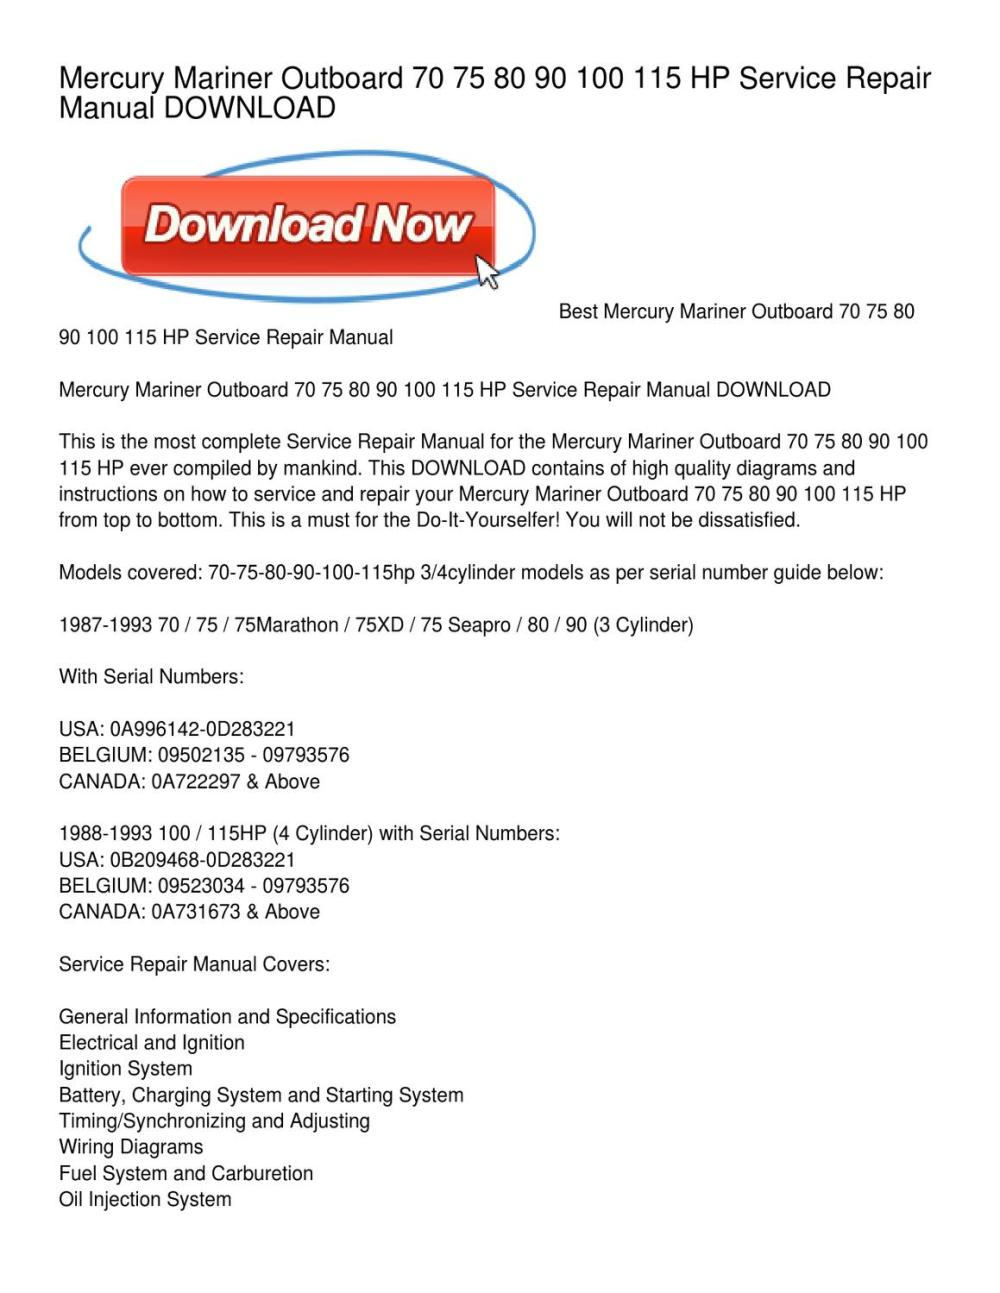 medium resolution of mercury mariner outboard 70 75 80 90 100 115 hp service repair manual download by joan head issuu